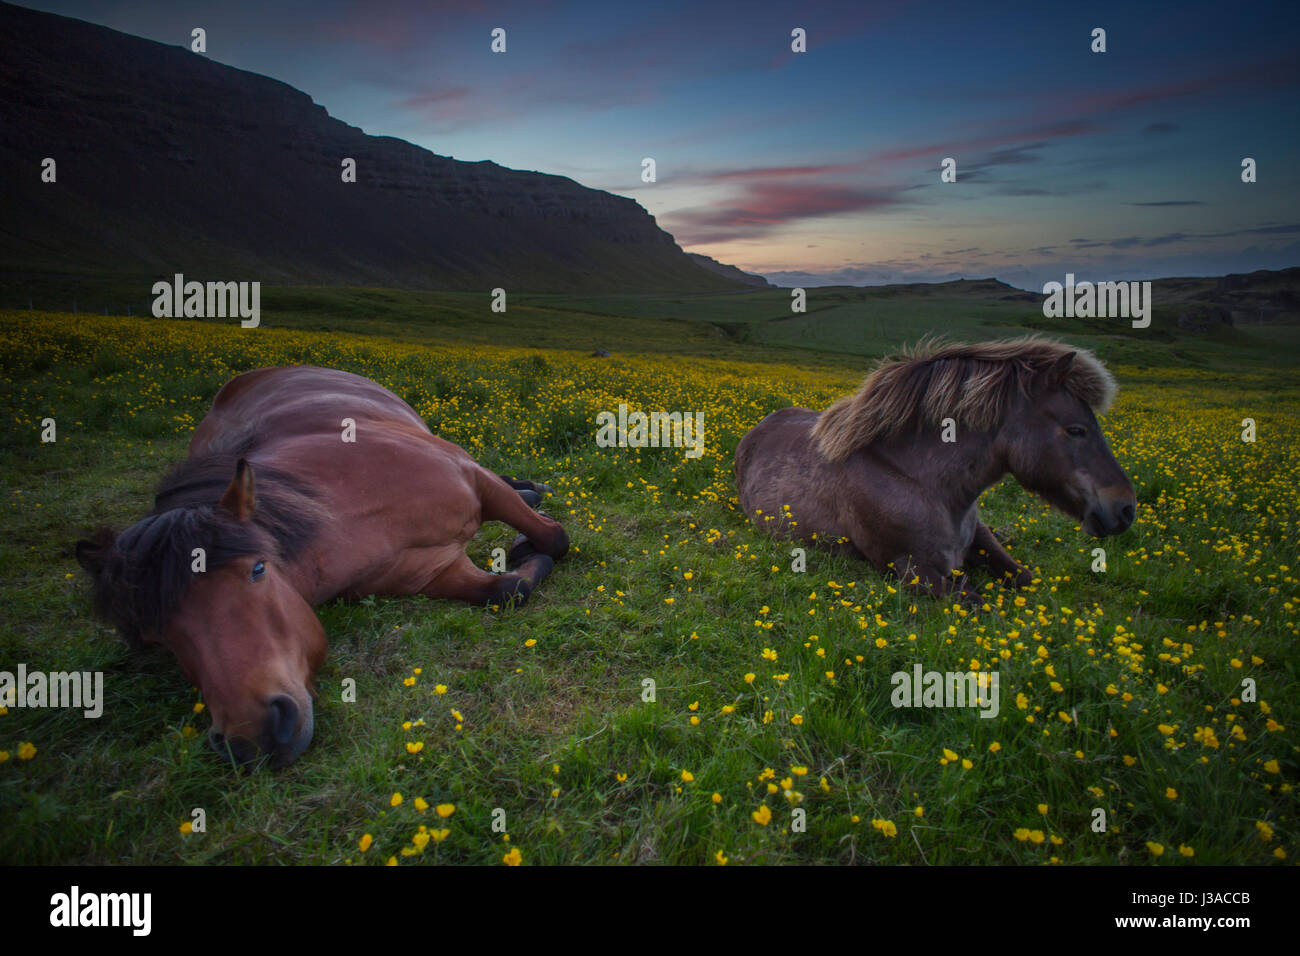 Two icelandic horses relaxing in a field of flowers - Stock Image